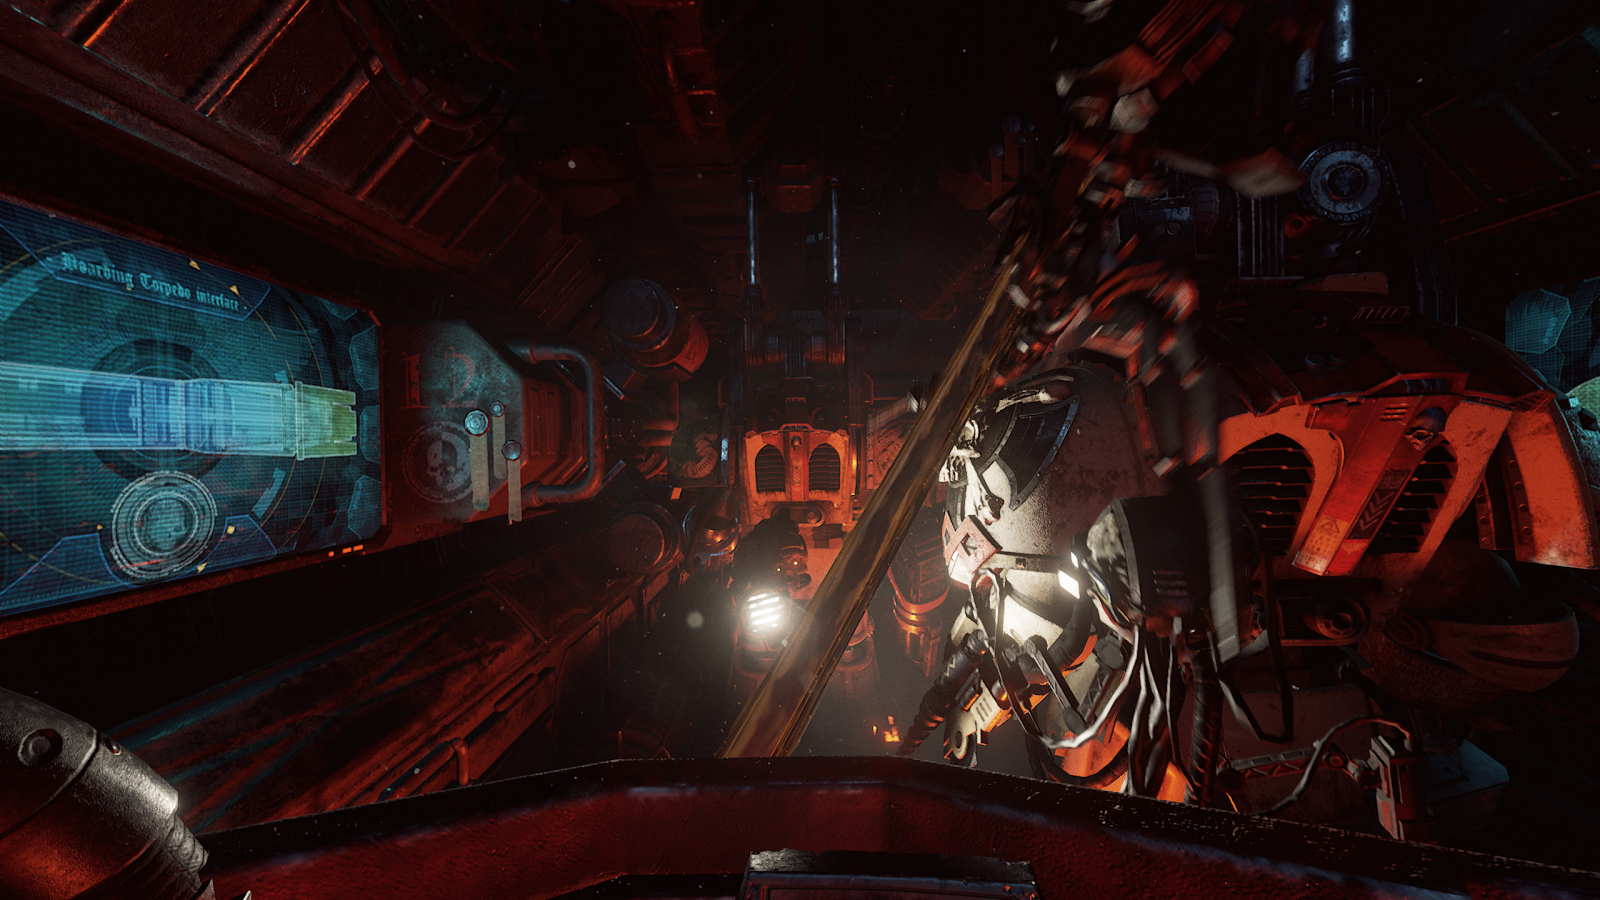 Space Hulk: Deathwing - a co-op mission based shooter that uses Unreal Engine 4, released last December. Get a team of 4 and have a blast. With this game, it's clear where the future of AAA is headed - at 1440p it runs at 60-65FPS G-Sync, the lowest among all the games I've played.